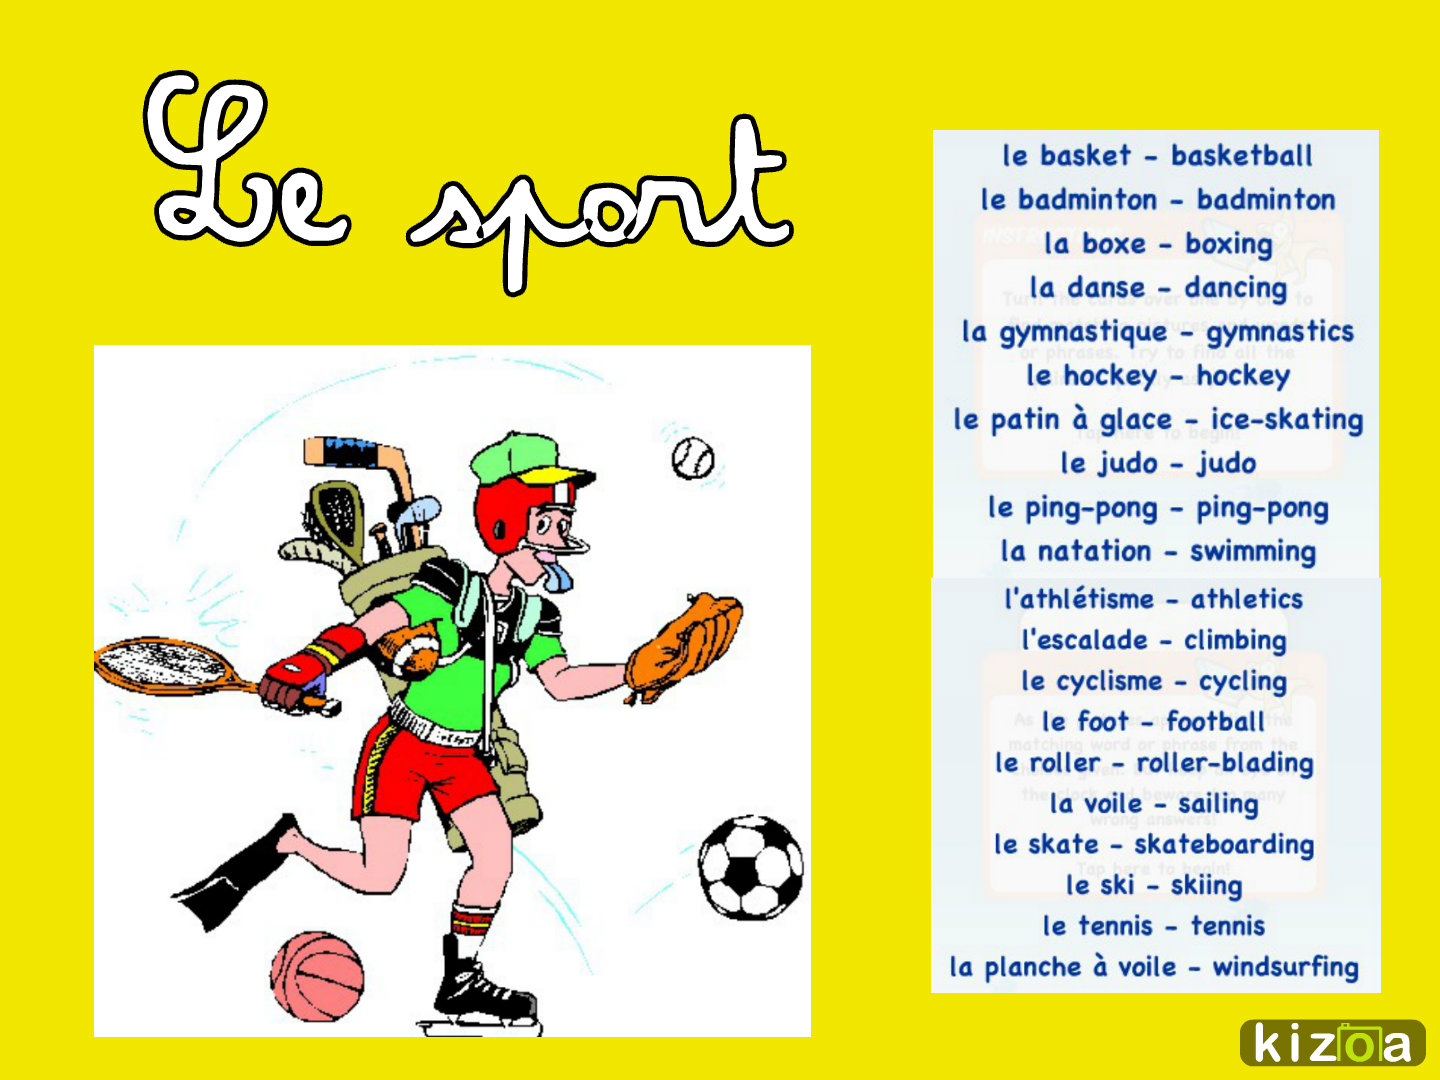 What is a general French opinion of sport and what are popular sports in France?